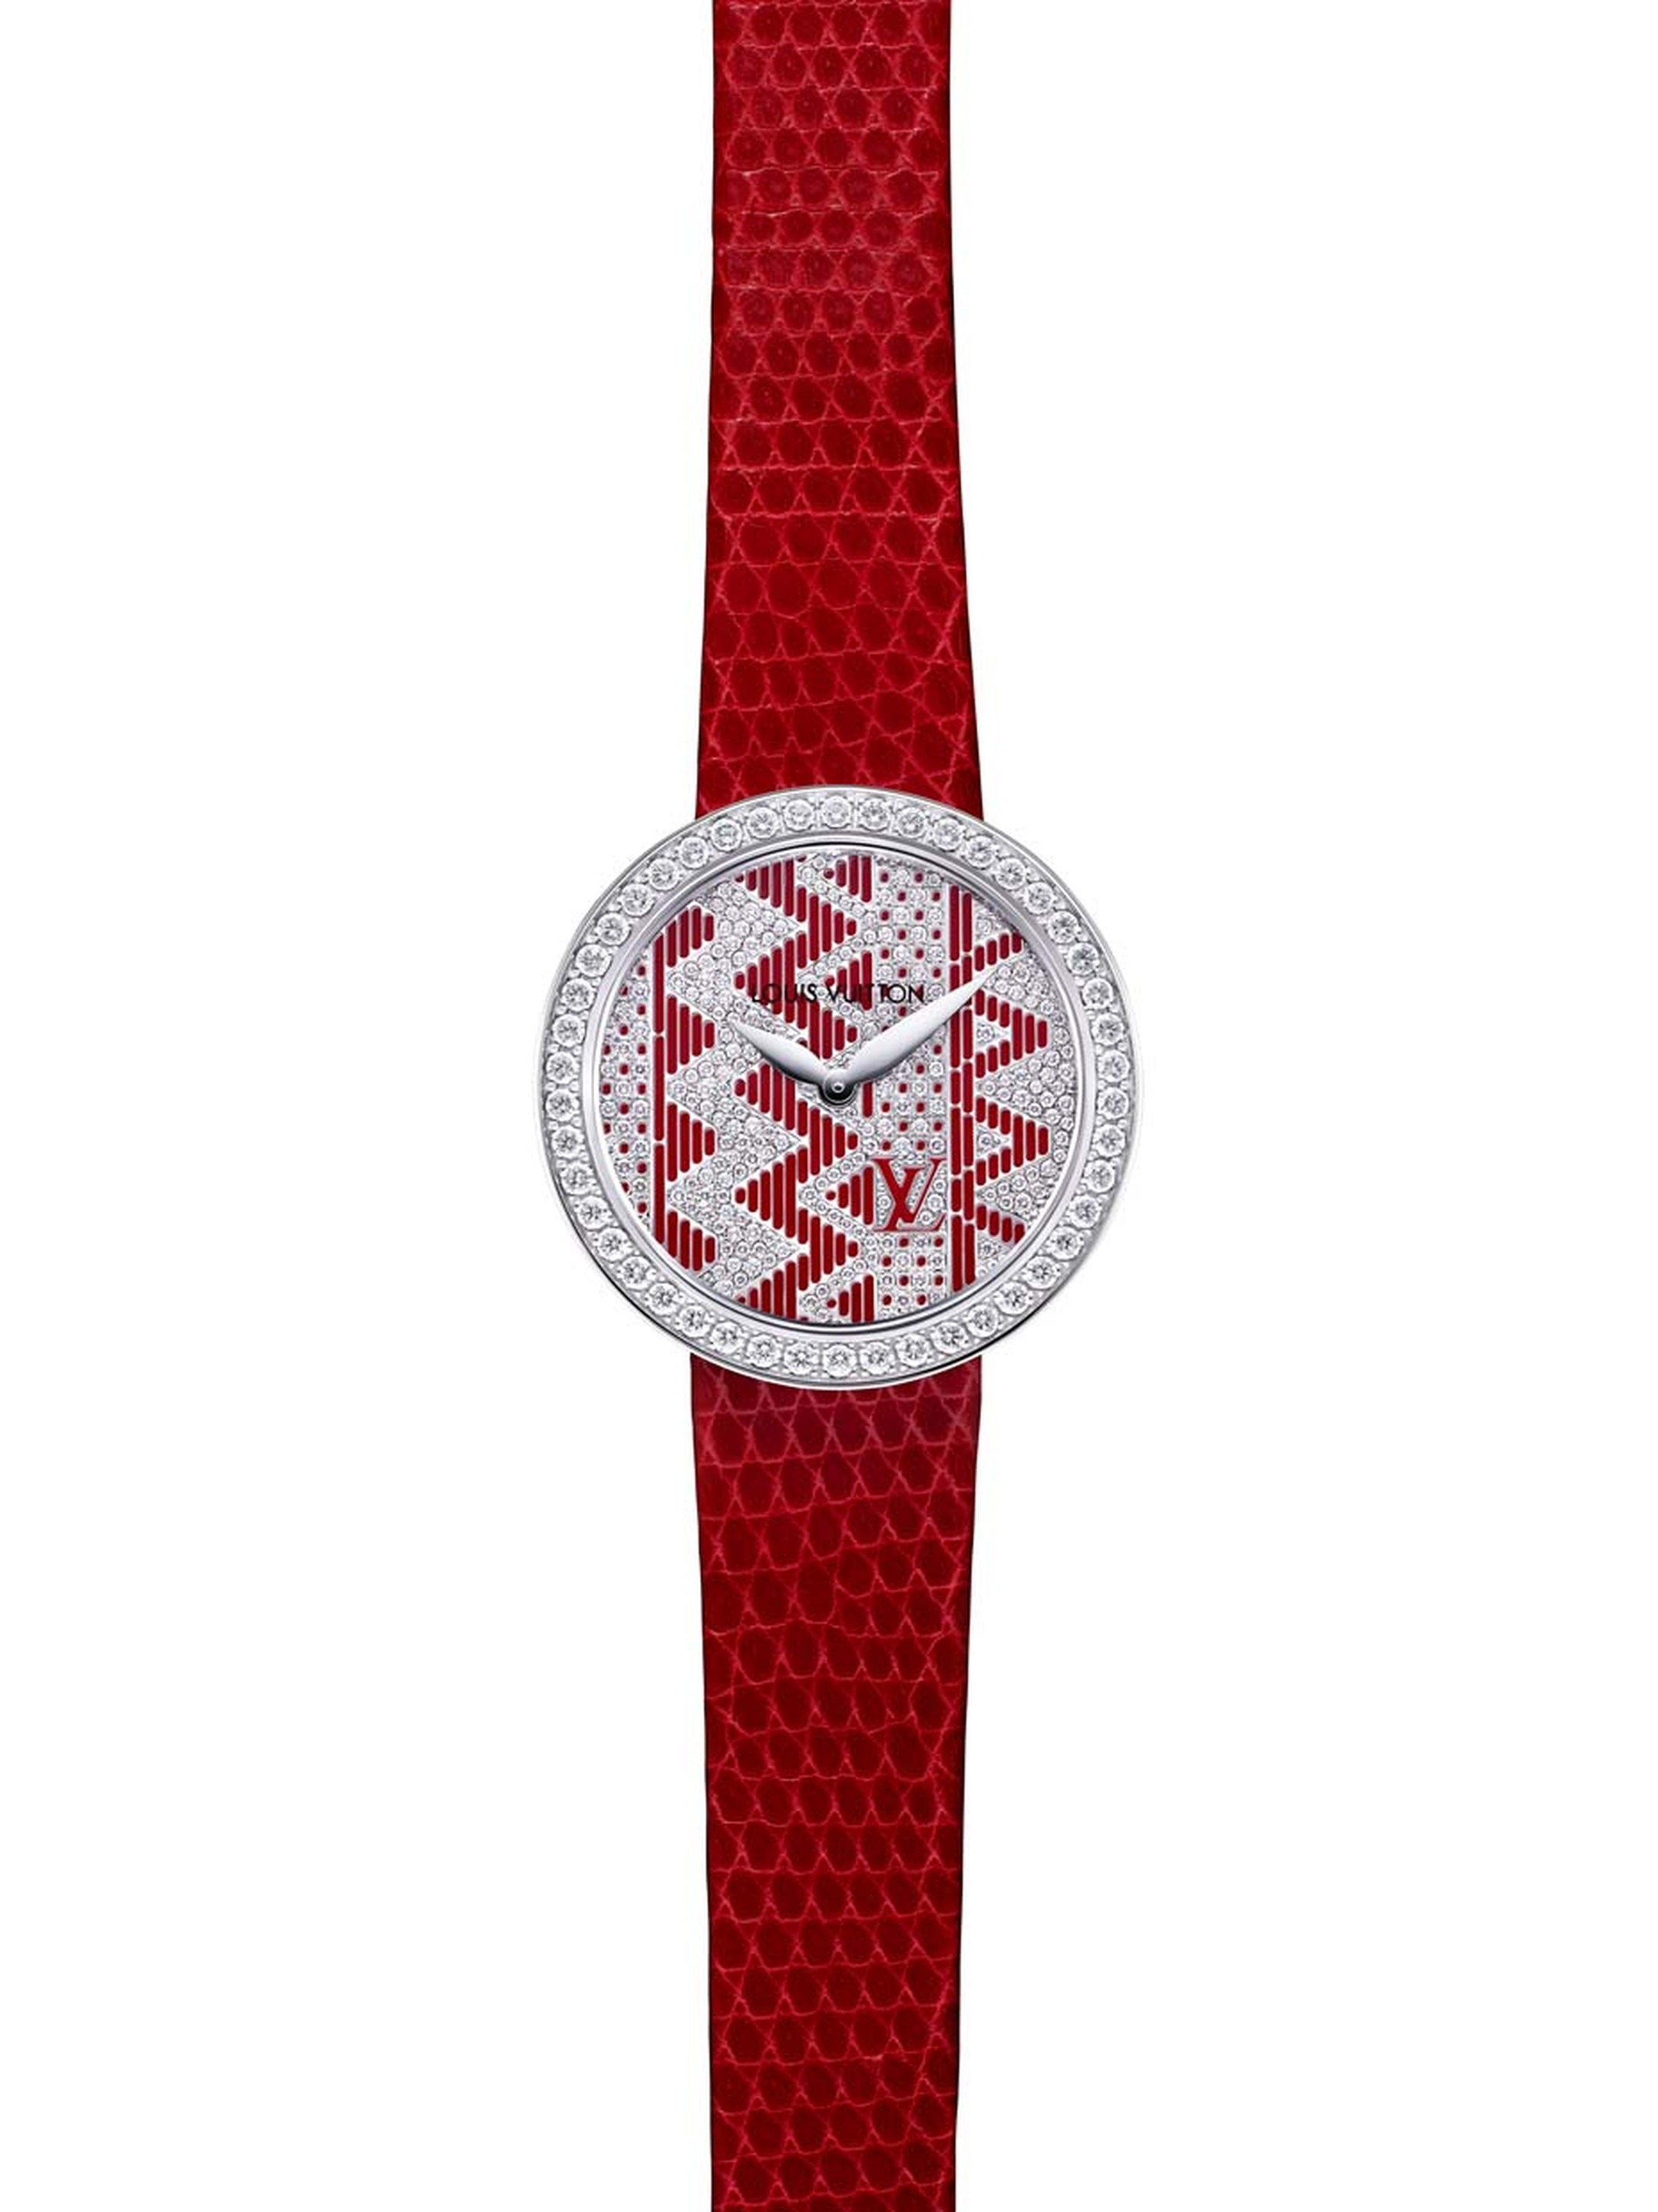 Louis Vuitton watches_Joaillerie Chevron Rouge.jpg